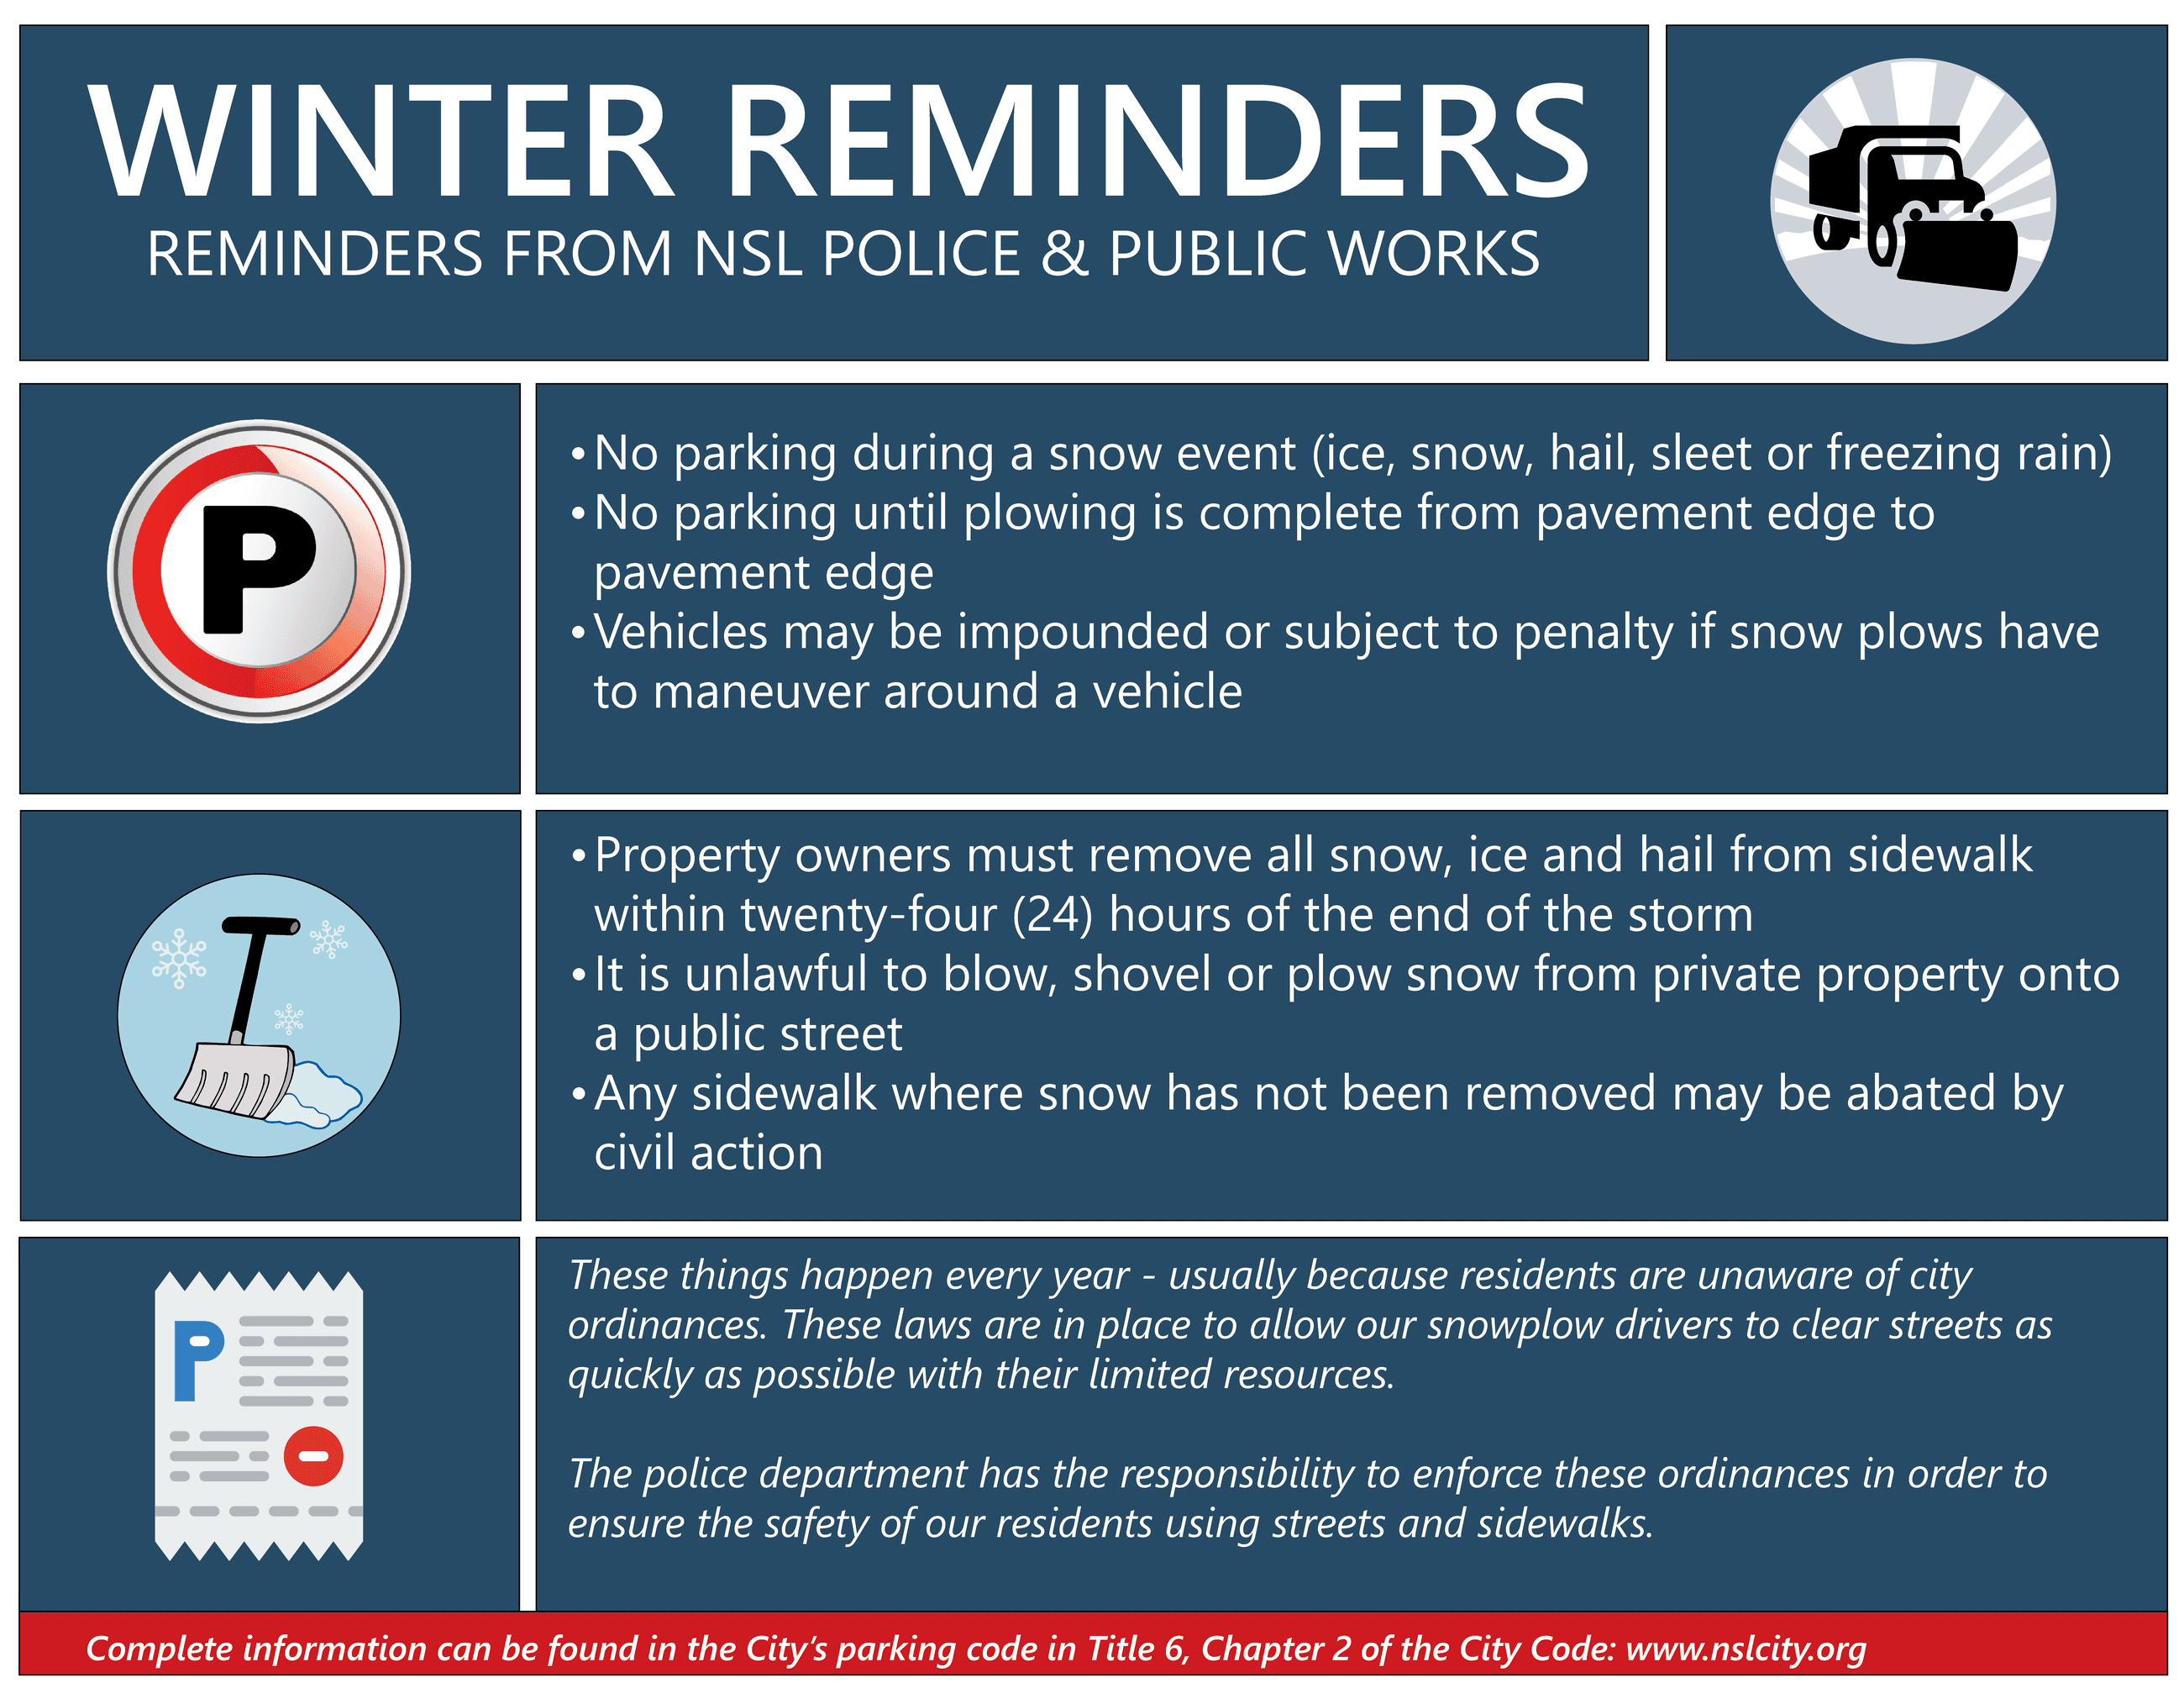 2020 Winter reminders for newsletter